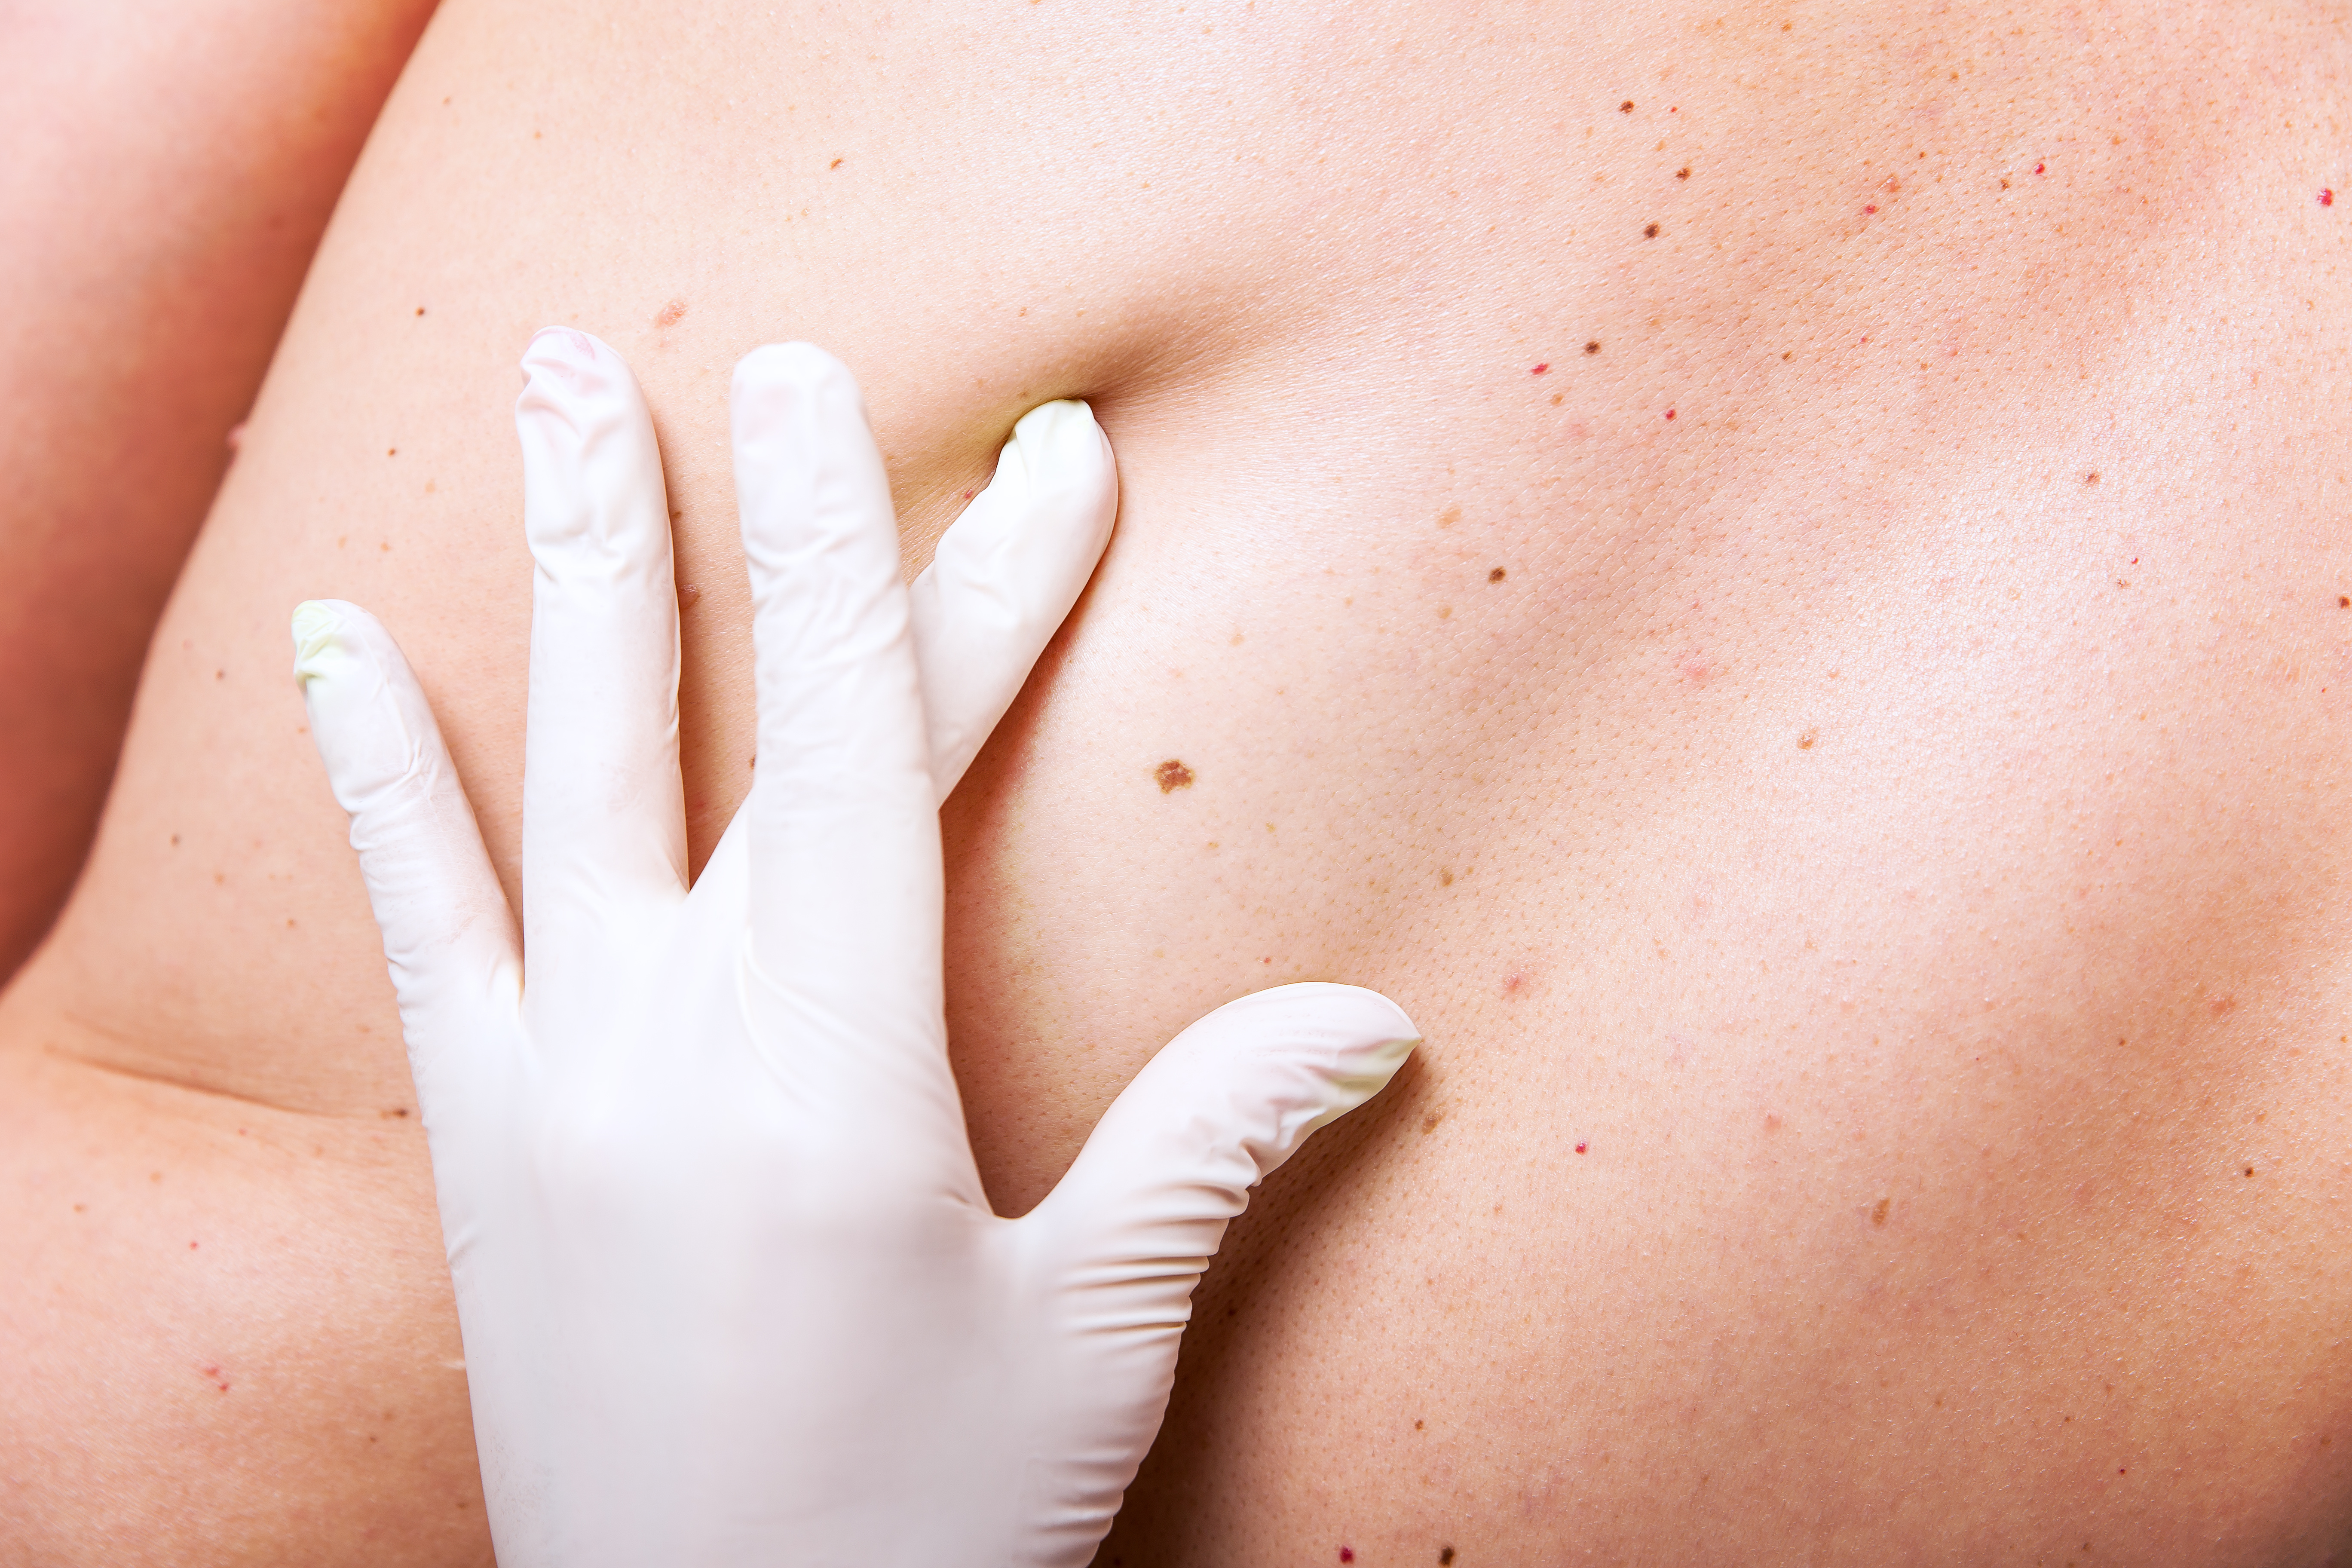 Moles, Warts, Scars, and Cherry Angiomas, Oh My! Homeopathy Helps